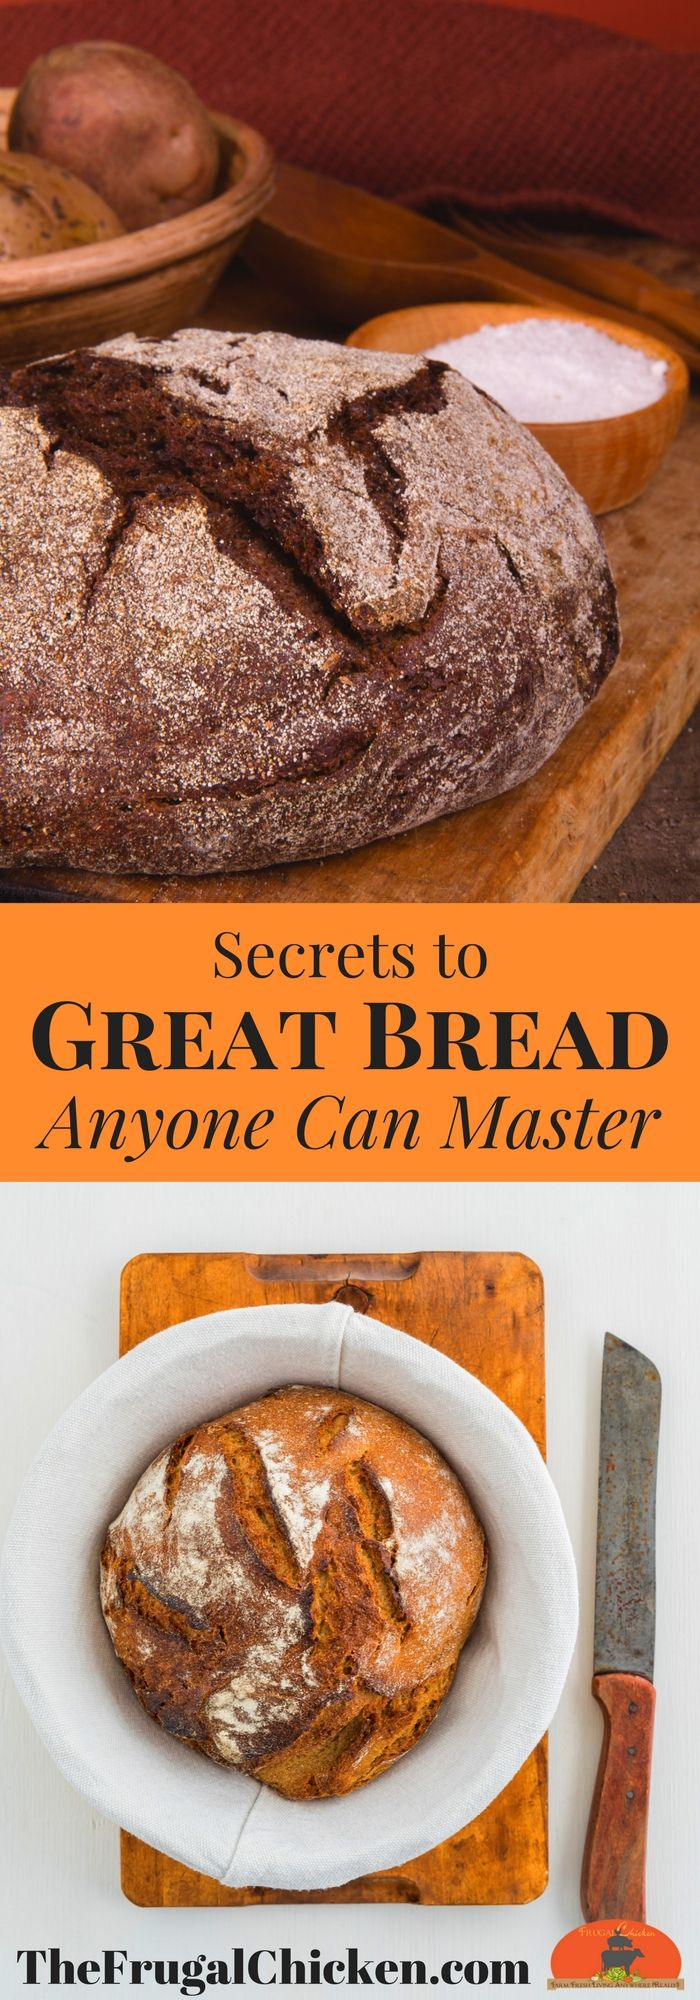 Making great bread is easy - and it doesn't take forever to master this skill. Learn how to make great bread in just minutes.